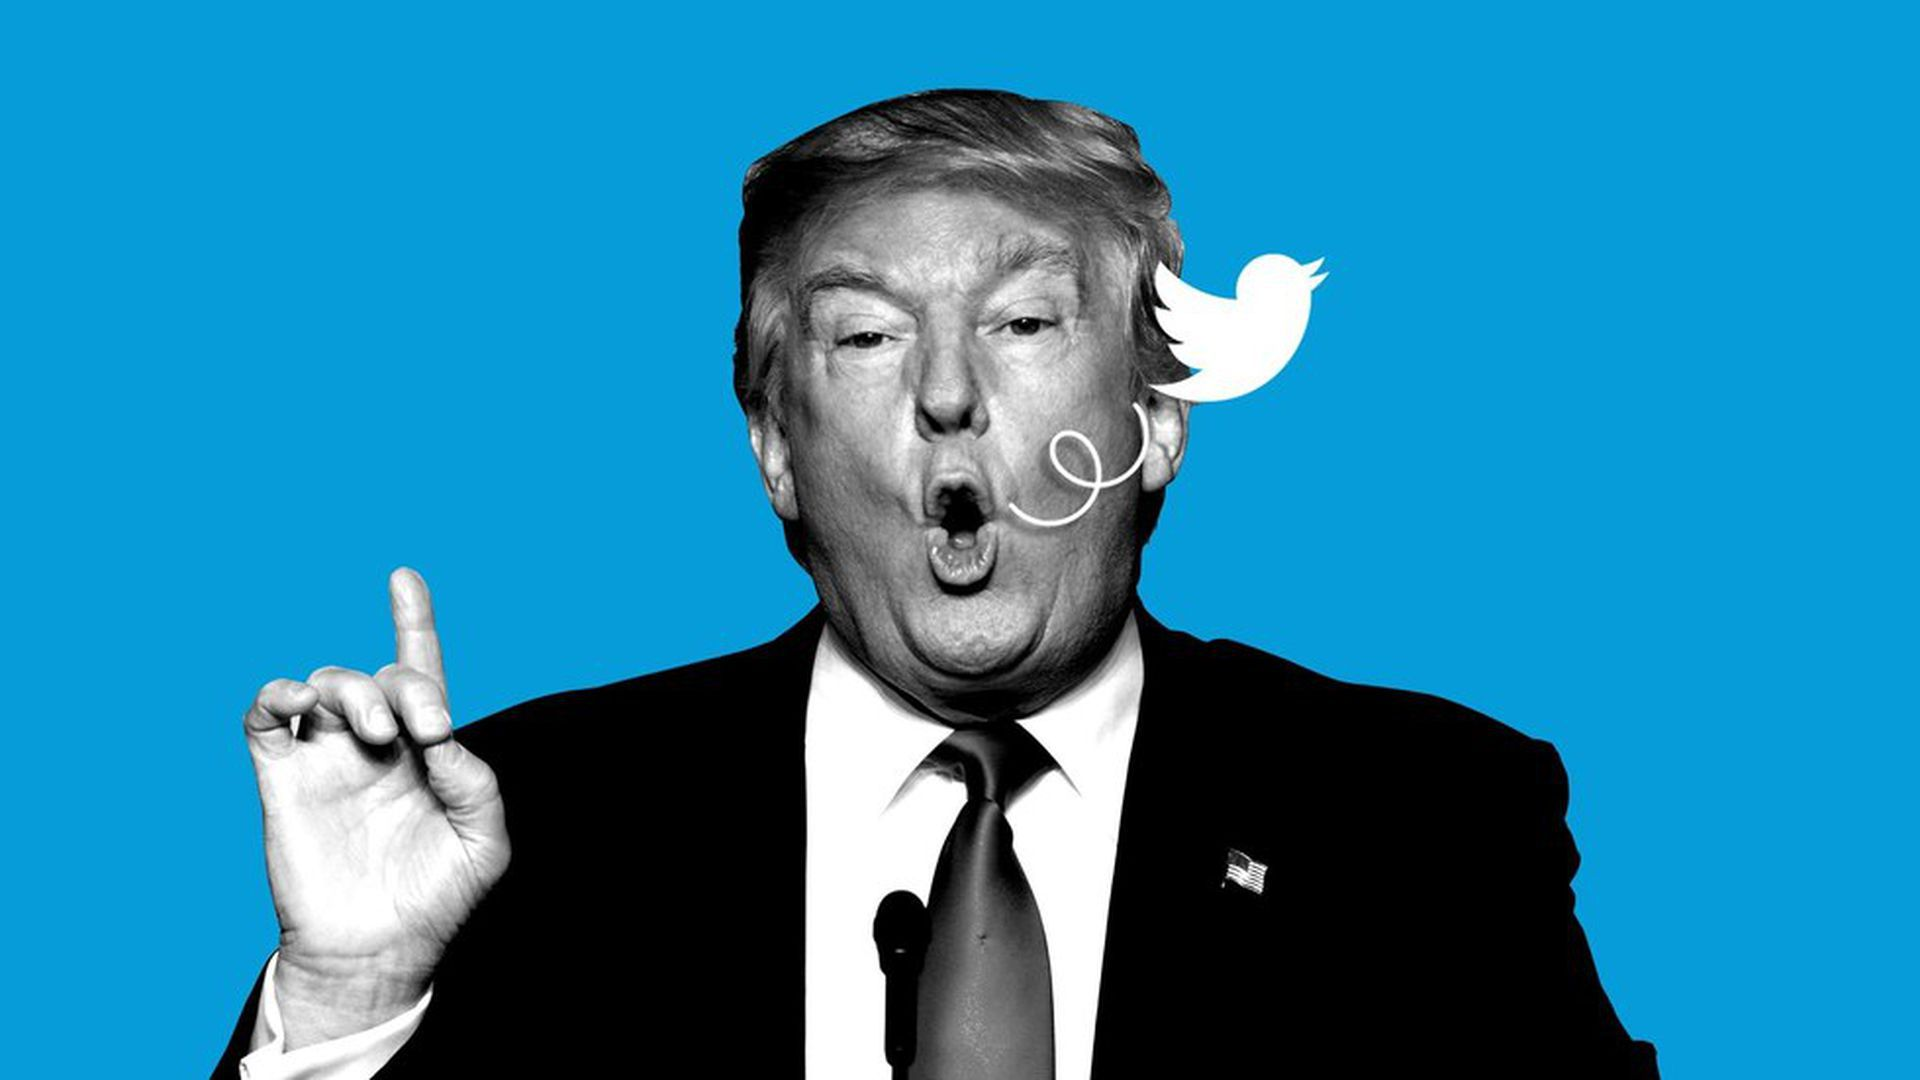 Court ruling could foreshadow new Twitter rules for Trump - Axios